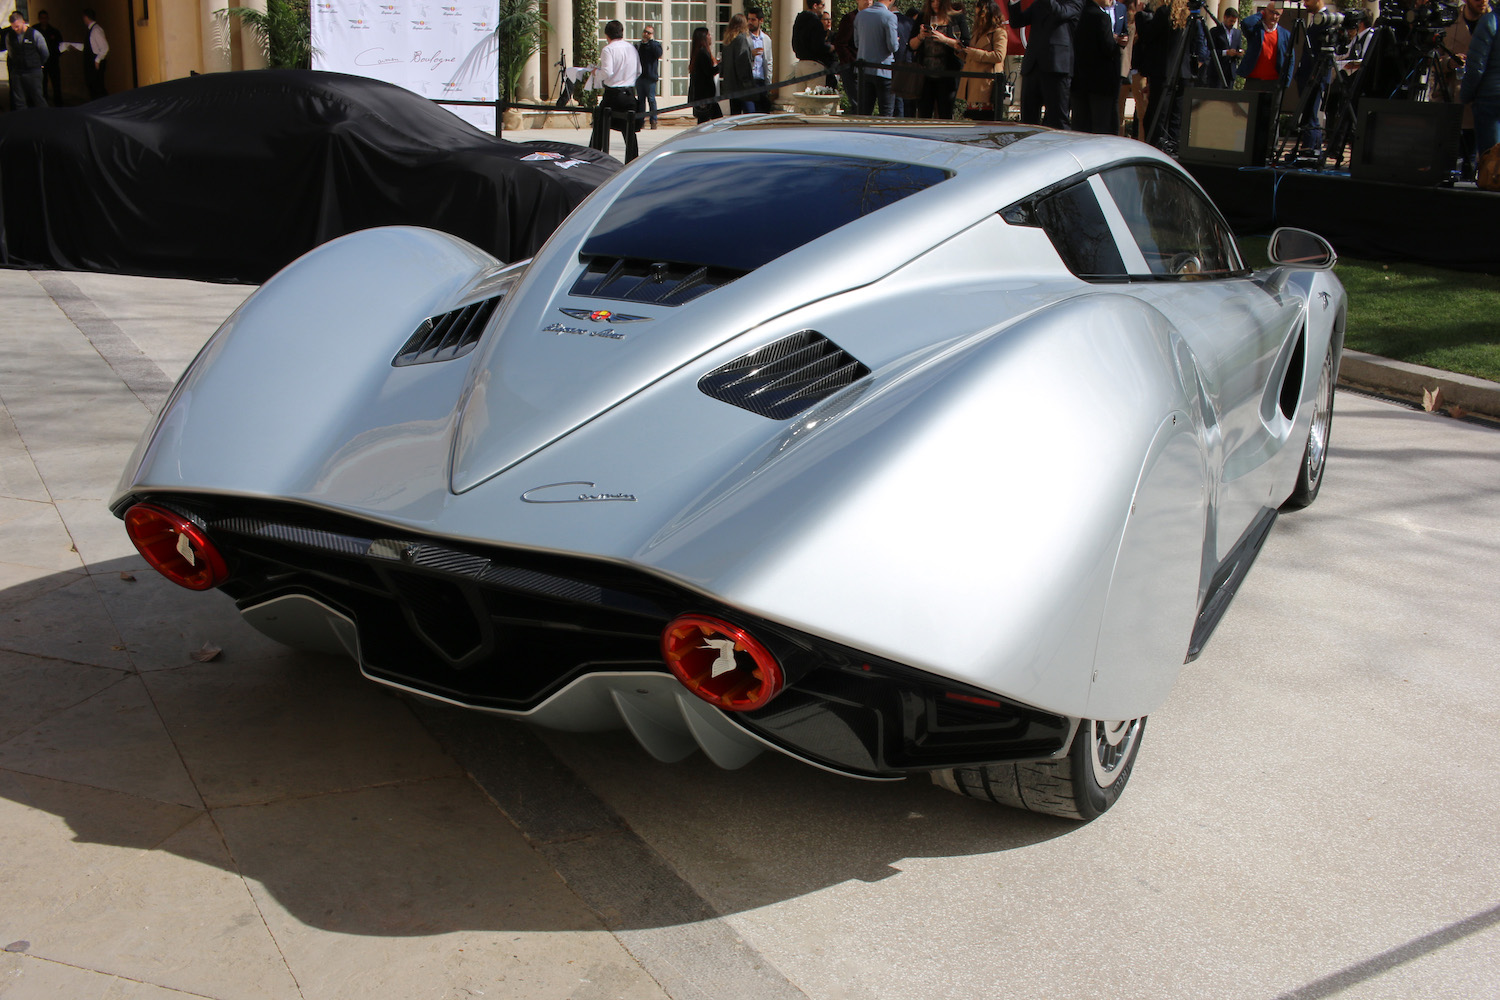 Hispano Suiza rear three-quarter